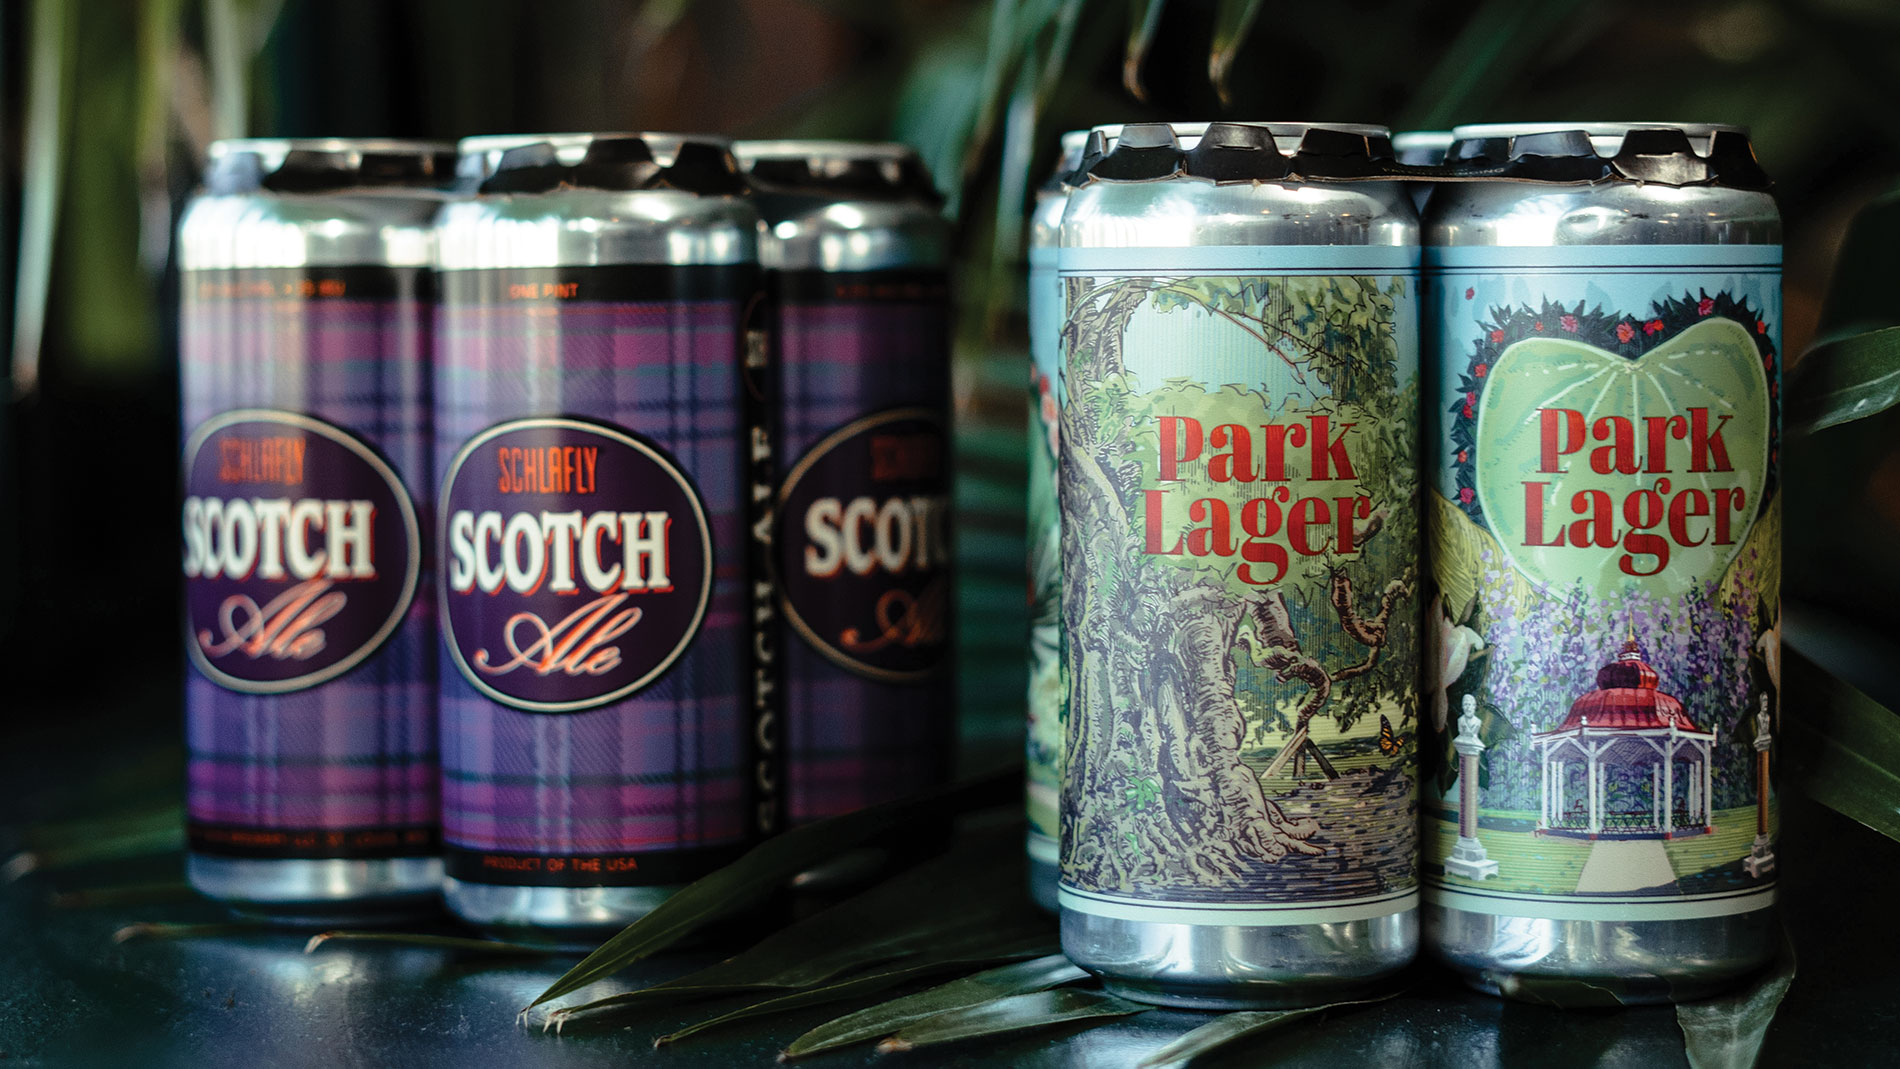 schlafly's scotch ale and park lager